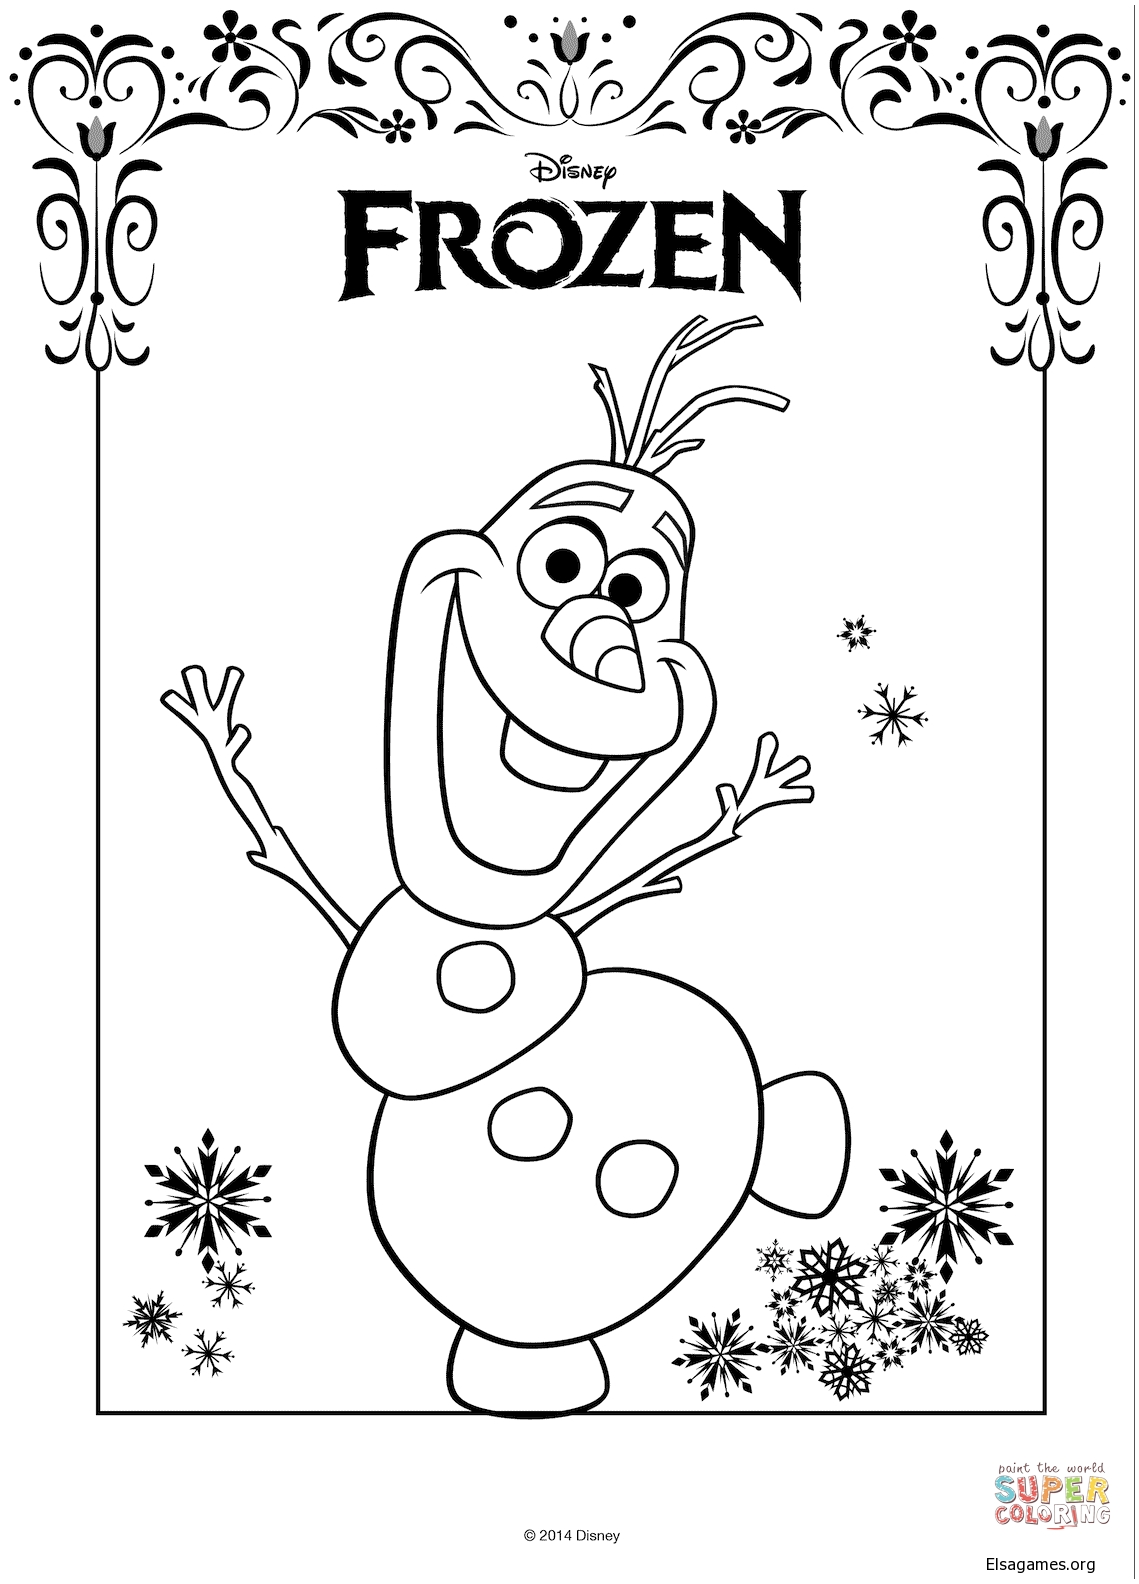 Olaf From Frozen From The Frozen